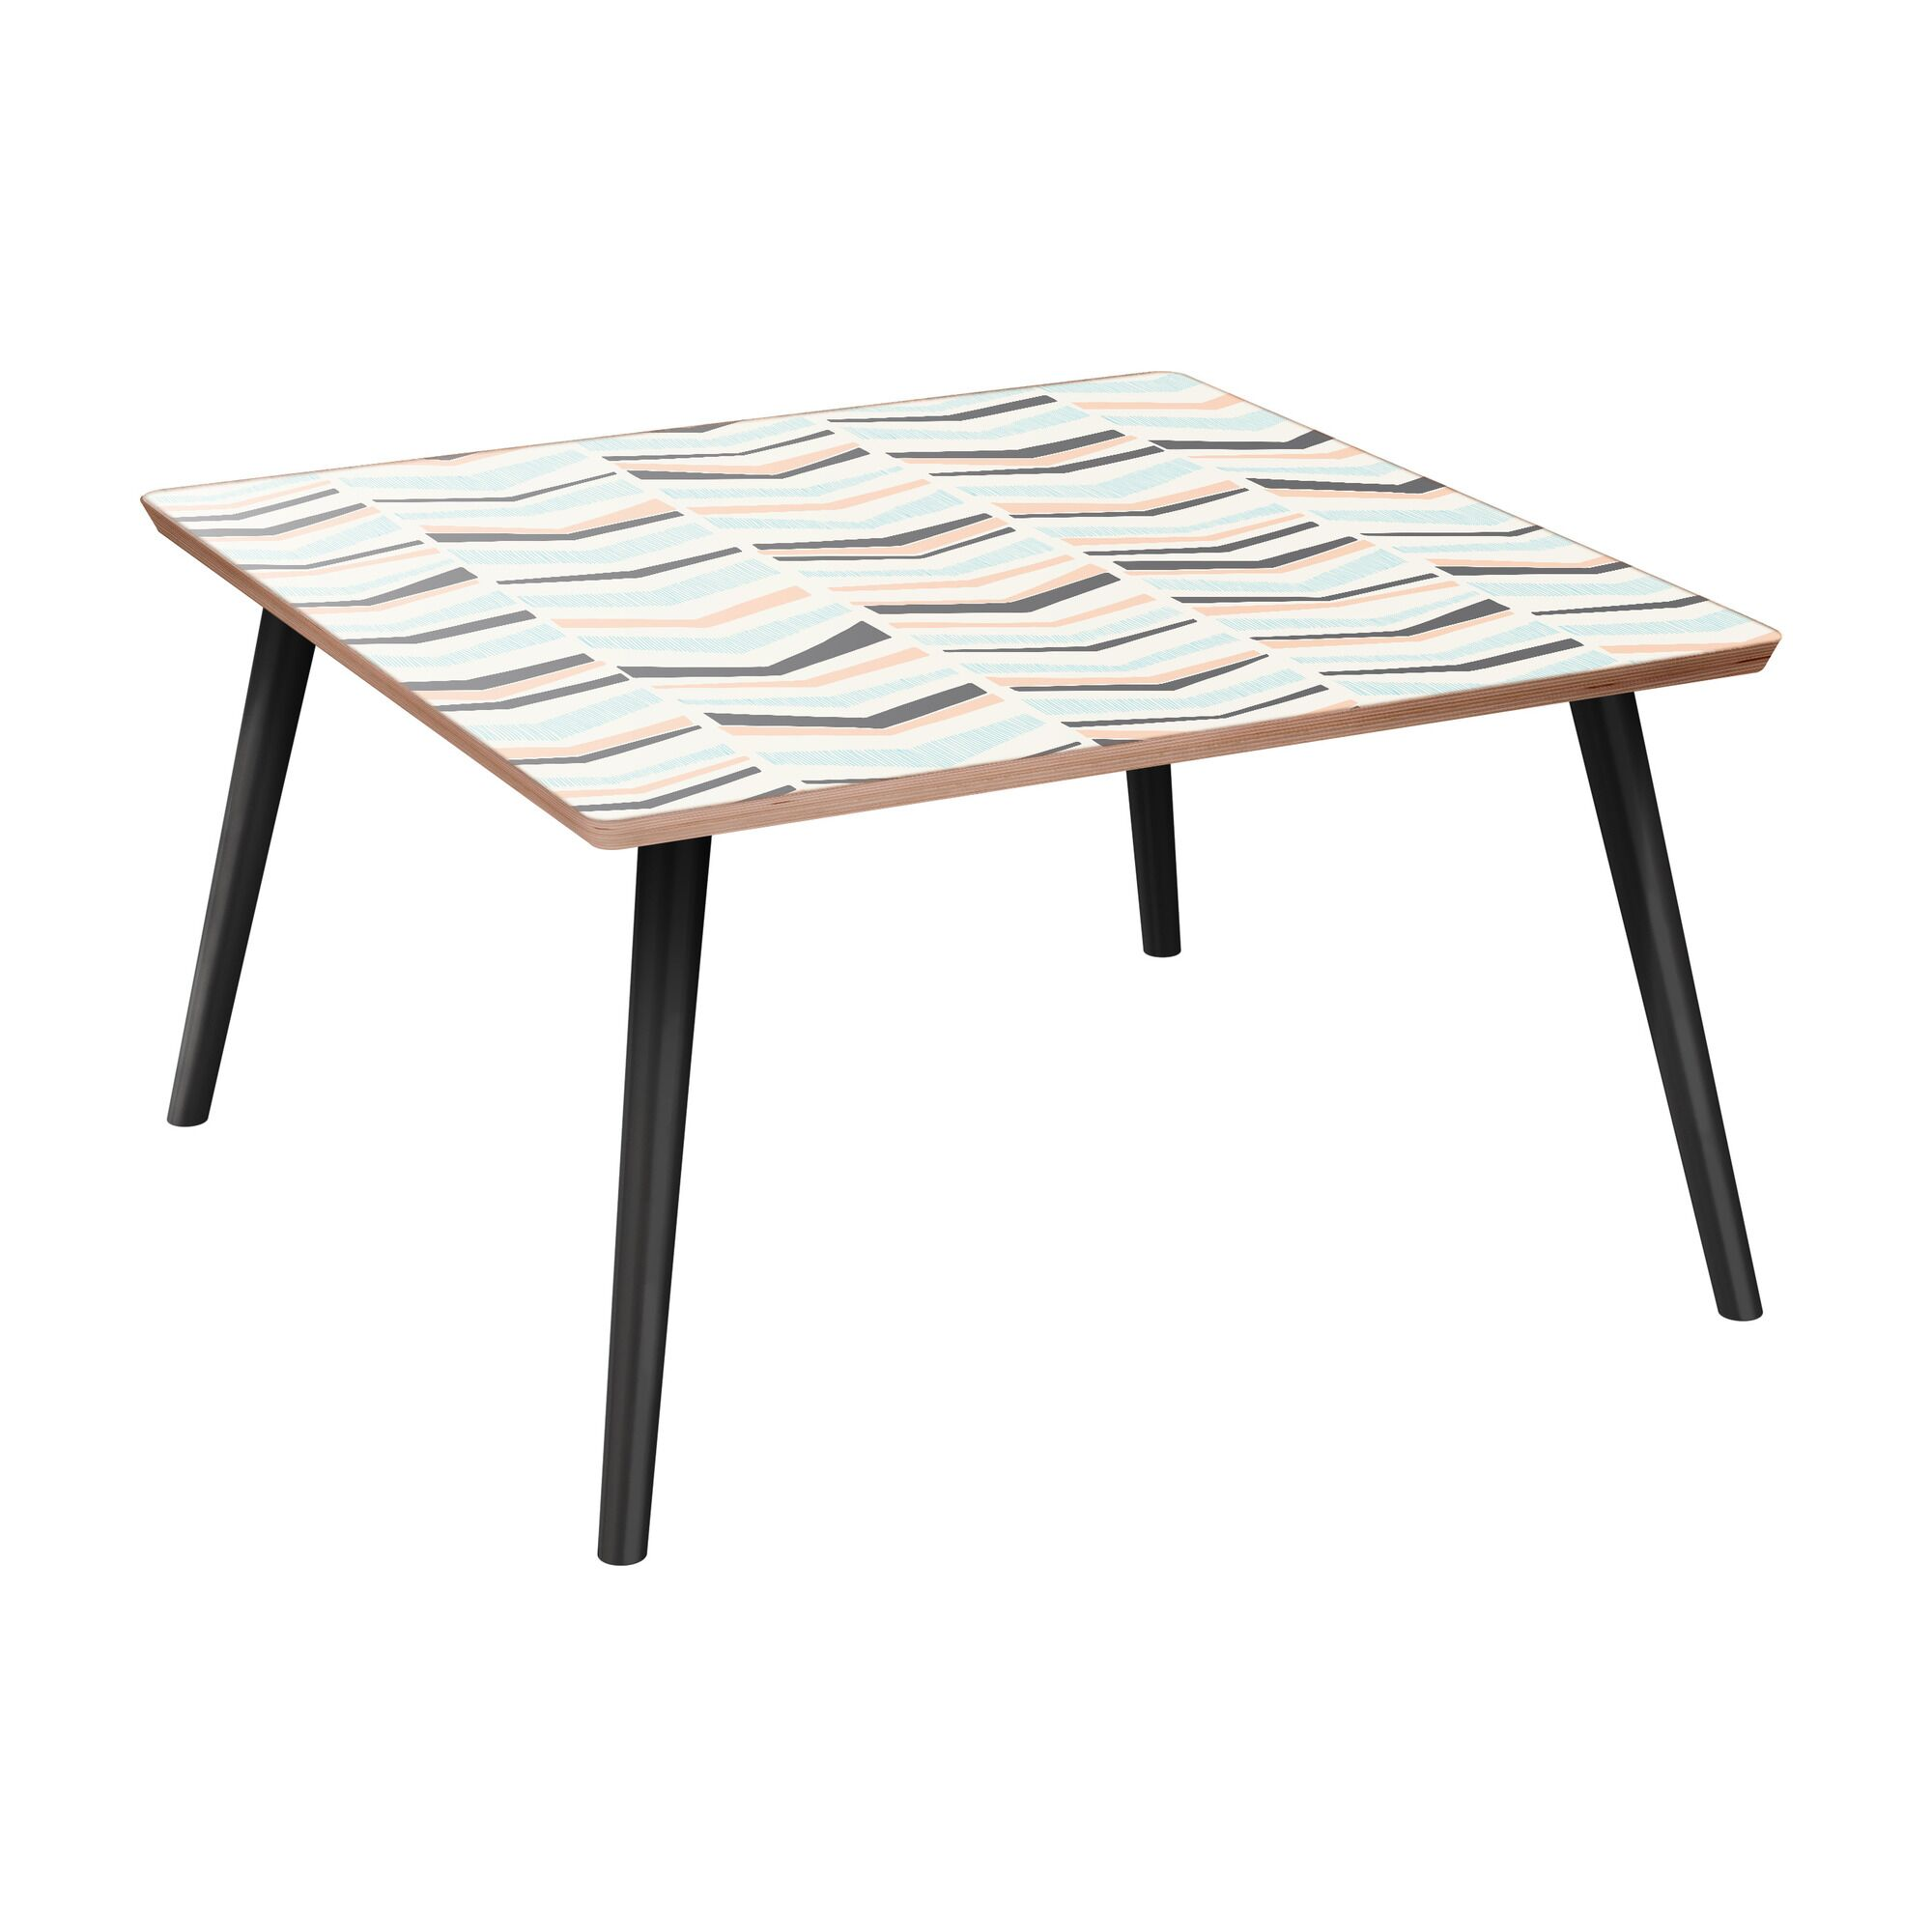 Scalf Coffee Table Table Base Color: Black, Table Top Color: Walnut